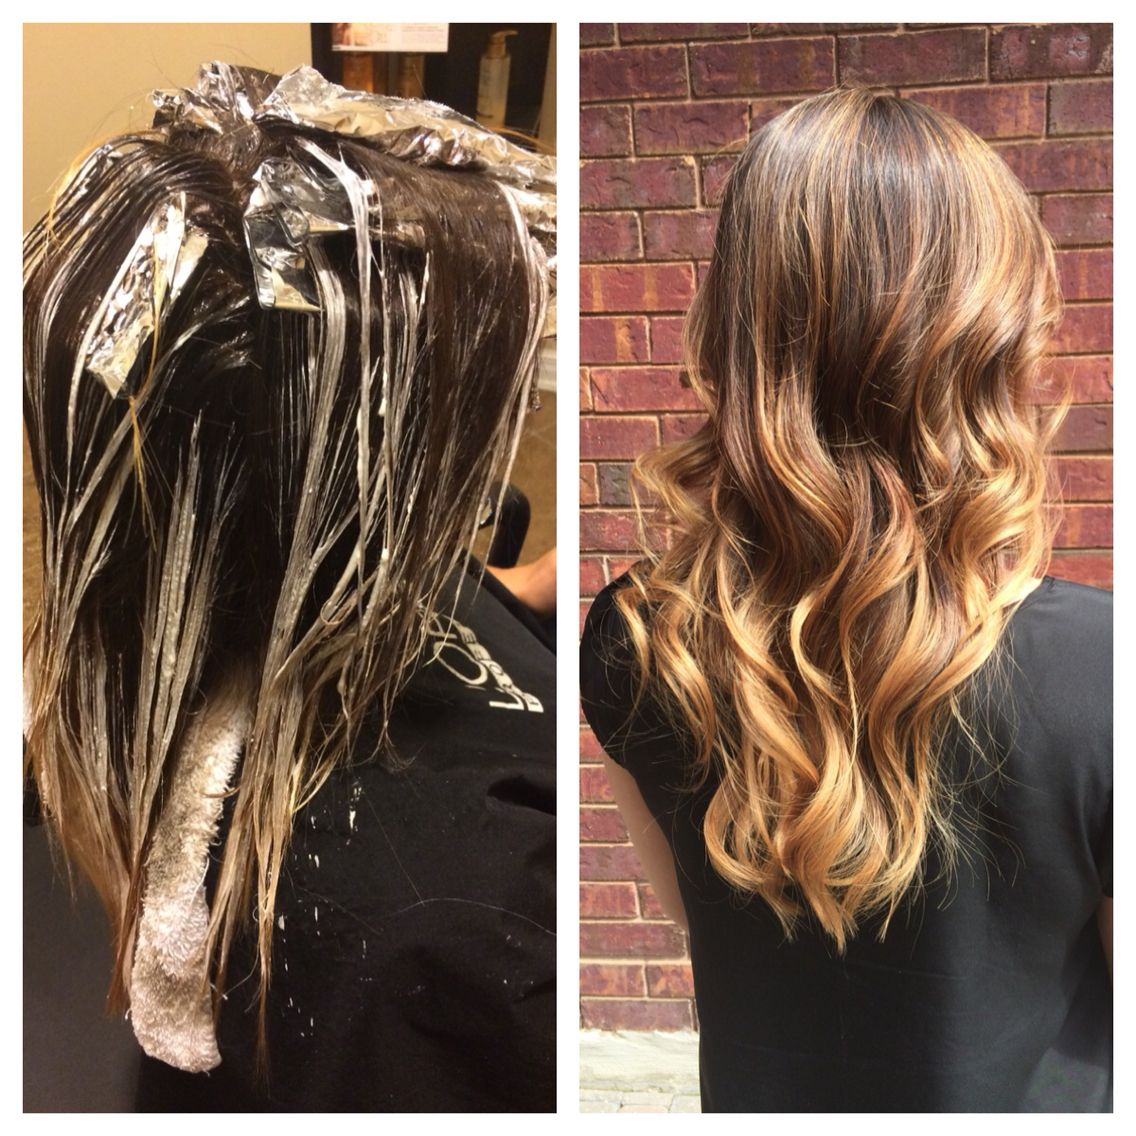 Before and after foil hilite and Balayage technique